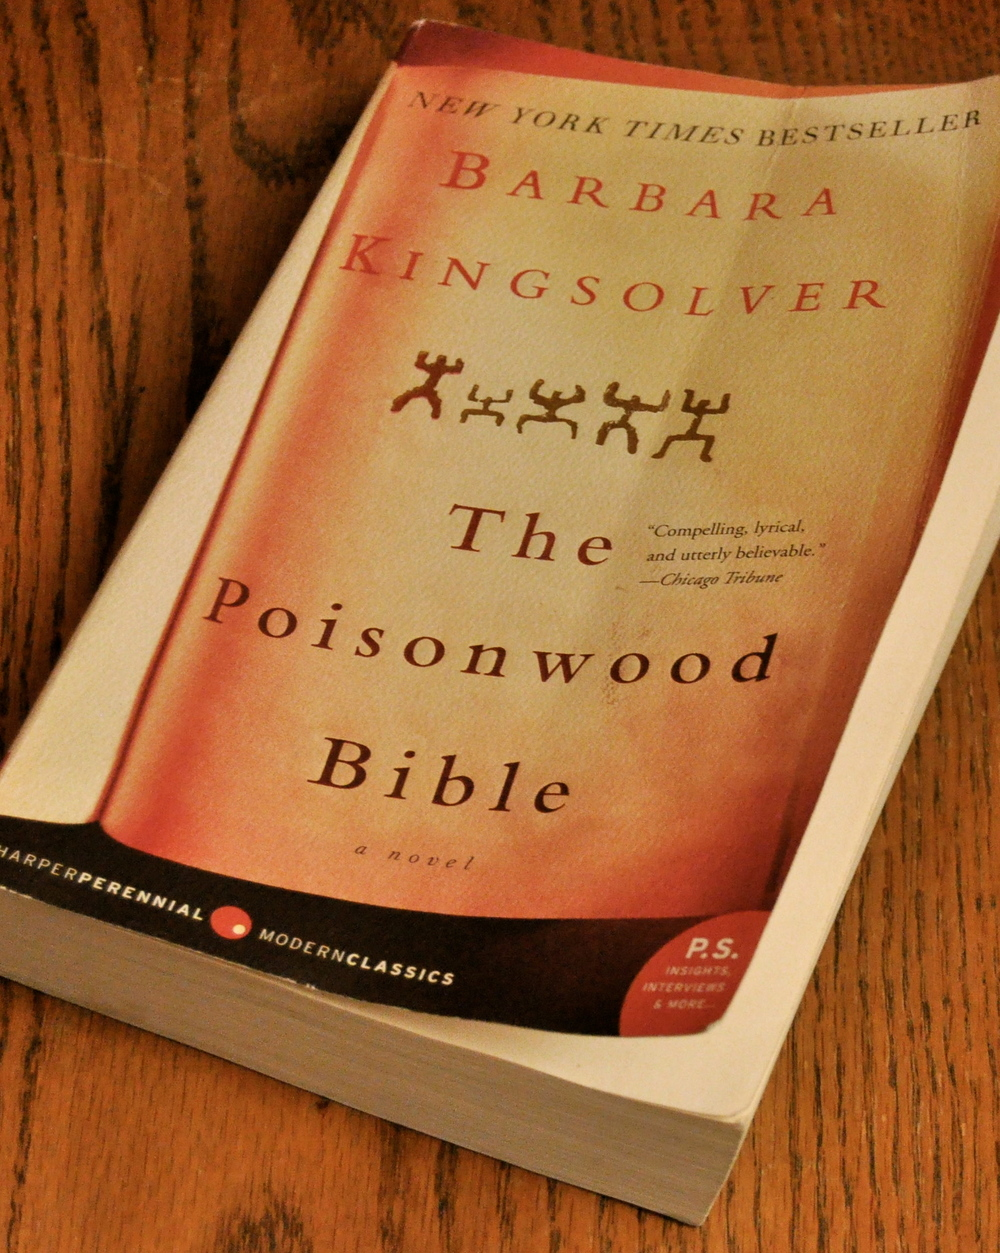 Has anyone read the Poisonwood Bible by Barbara Kingsolver?